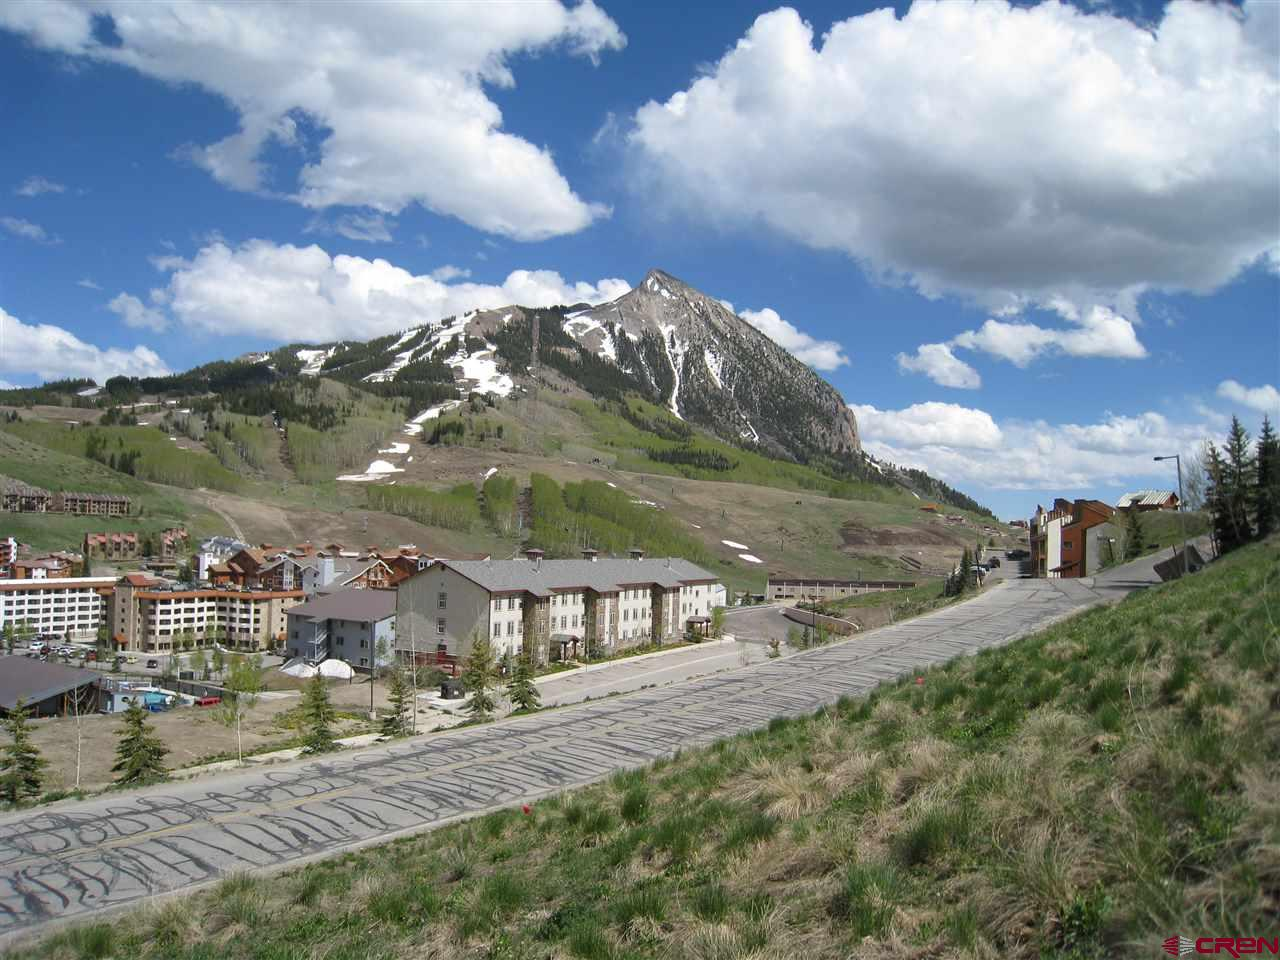 MLS# 757036 - 13 - 17 Marcellina Lane, Mt. Crested Butte, CO 81225